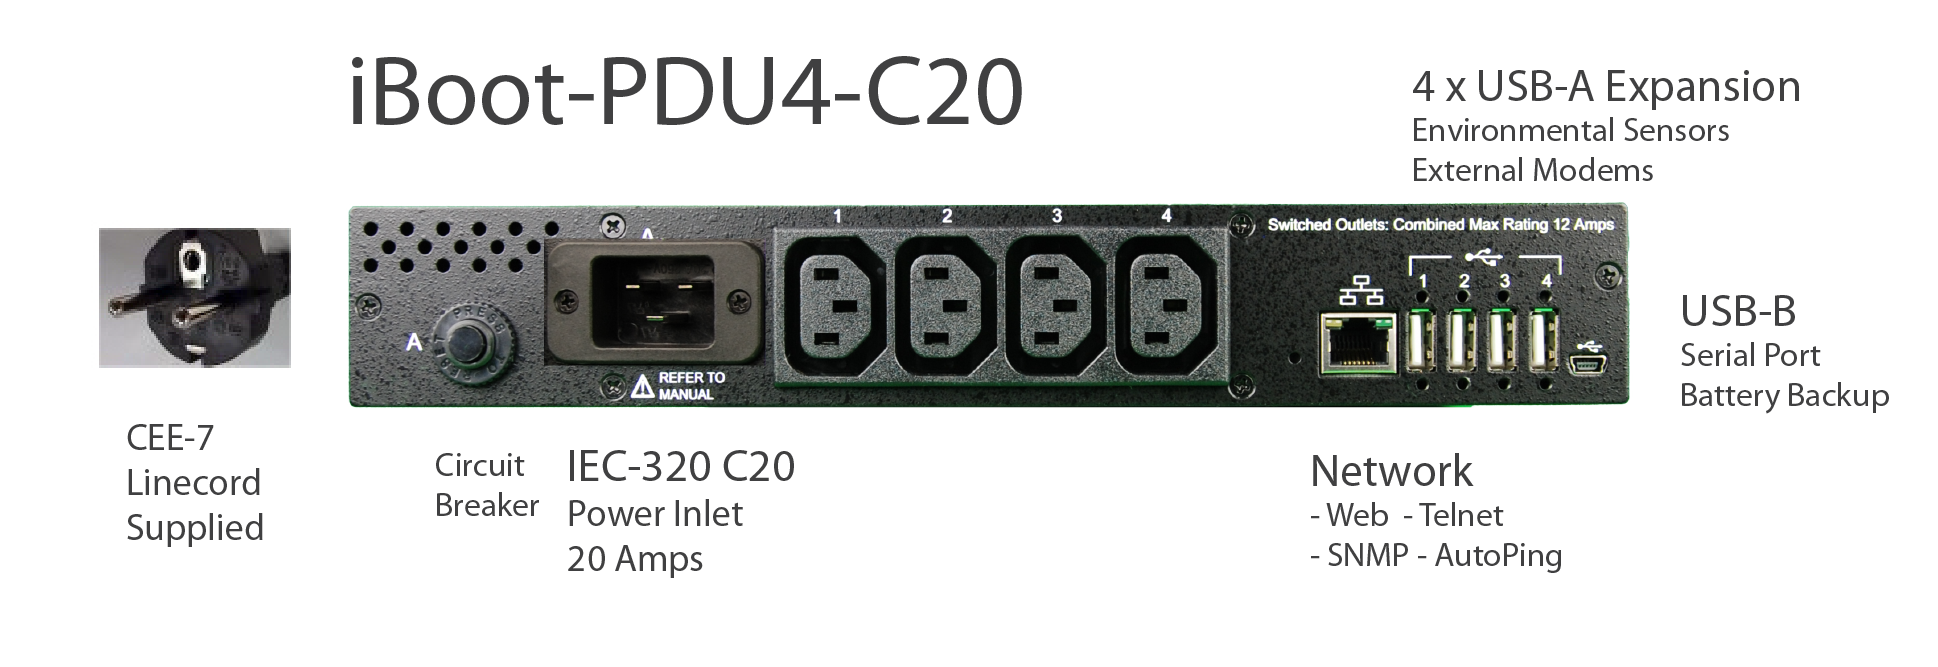 iBoot-PDU4-C10 for Remote Reboot, 1 x IEC C14 .